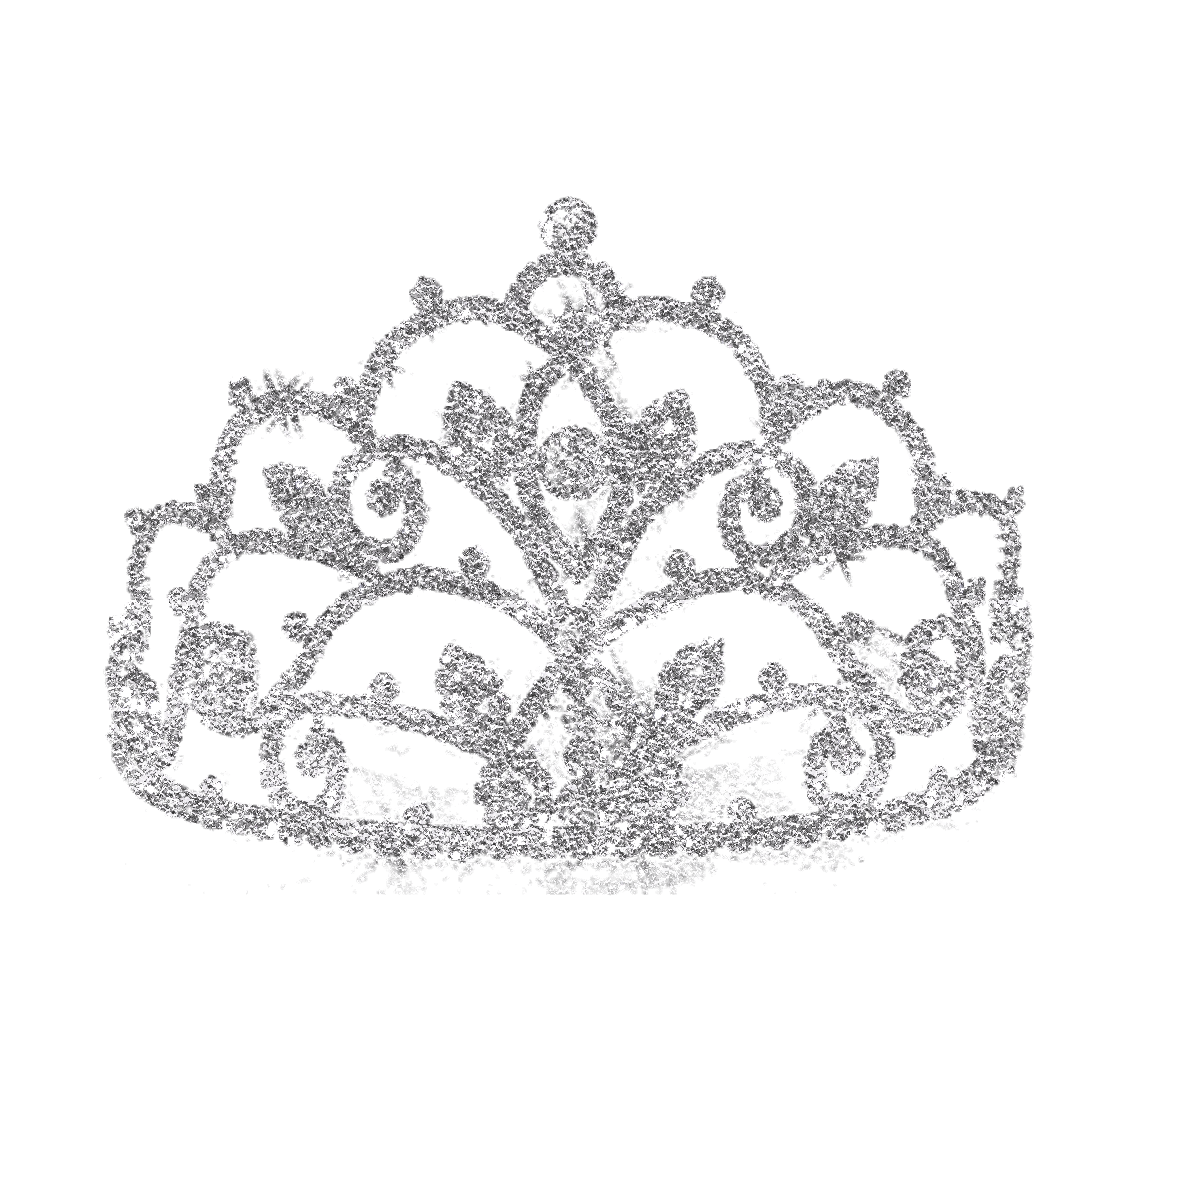 Crowns images for your. Crown and sash clipart